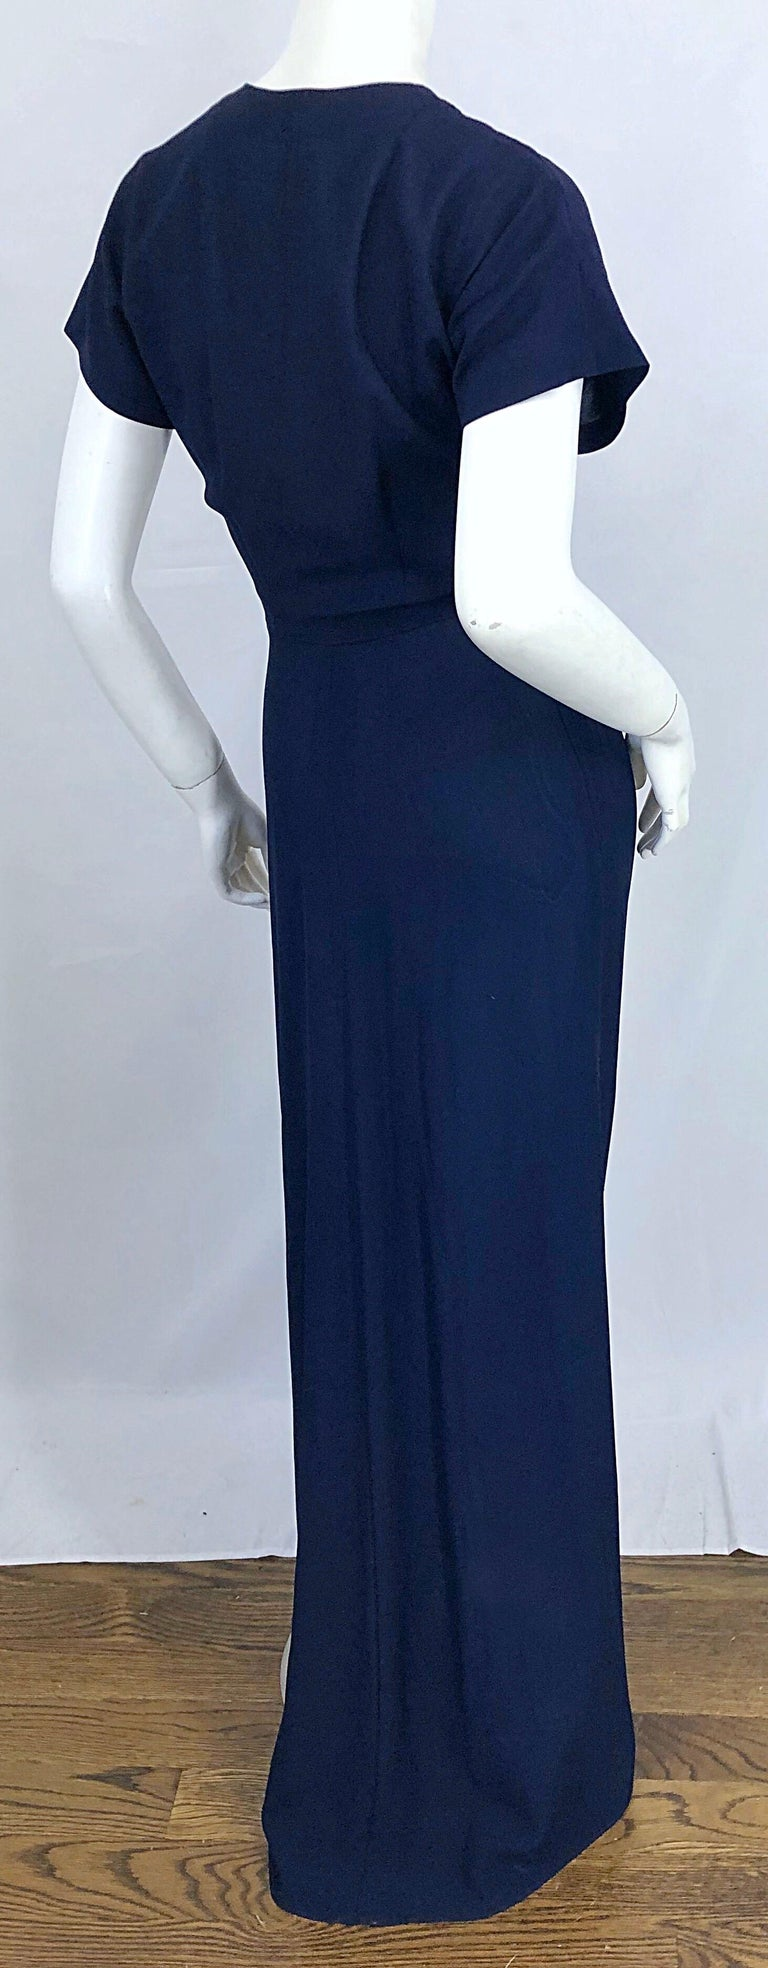 1940s Demi Couture Navy Blue + Pale Pink Short Sleeve 40s Vintage Gown / Dress In Excellent Condition For Sale In Chicago, IL